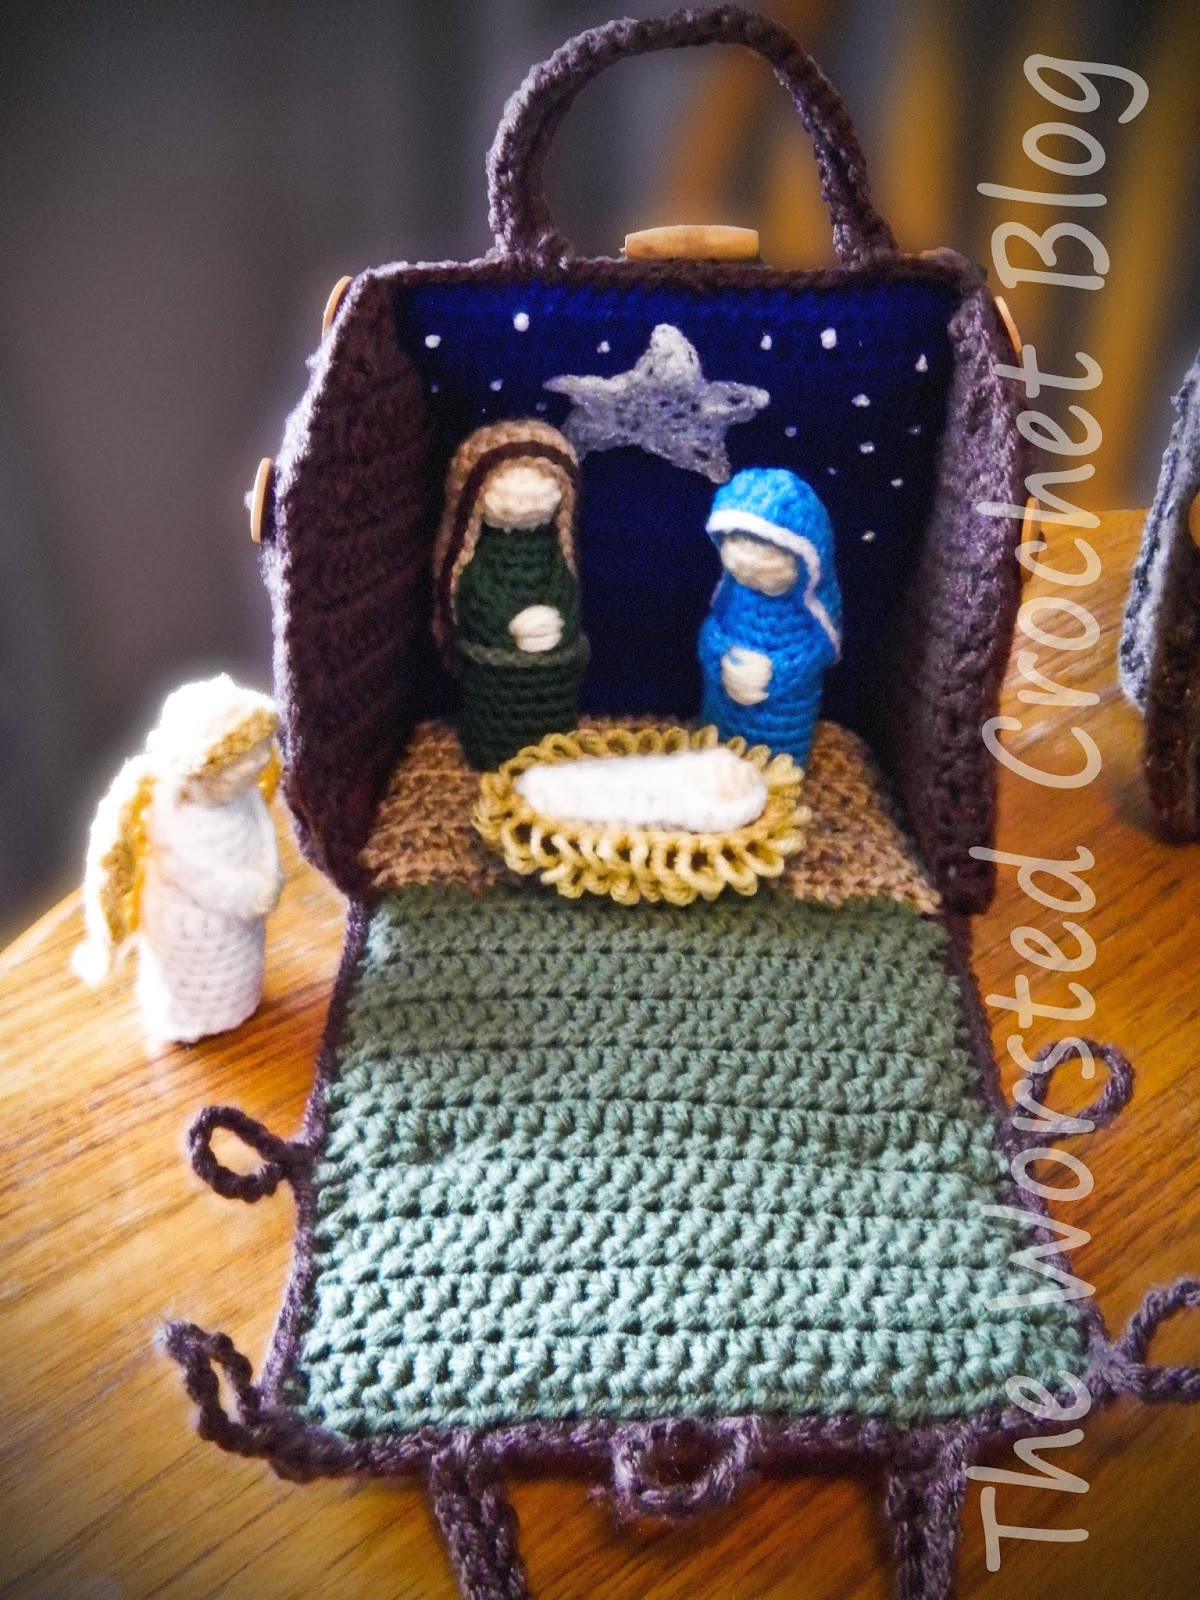 Crocheted Nativity Scene Related Keywords & Suggestions - Crocheted ...